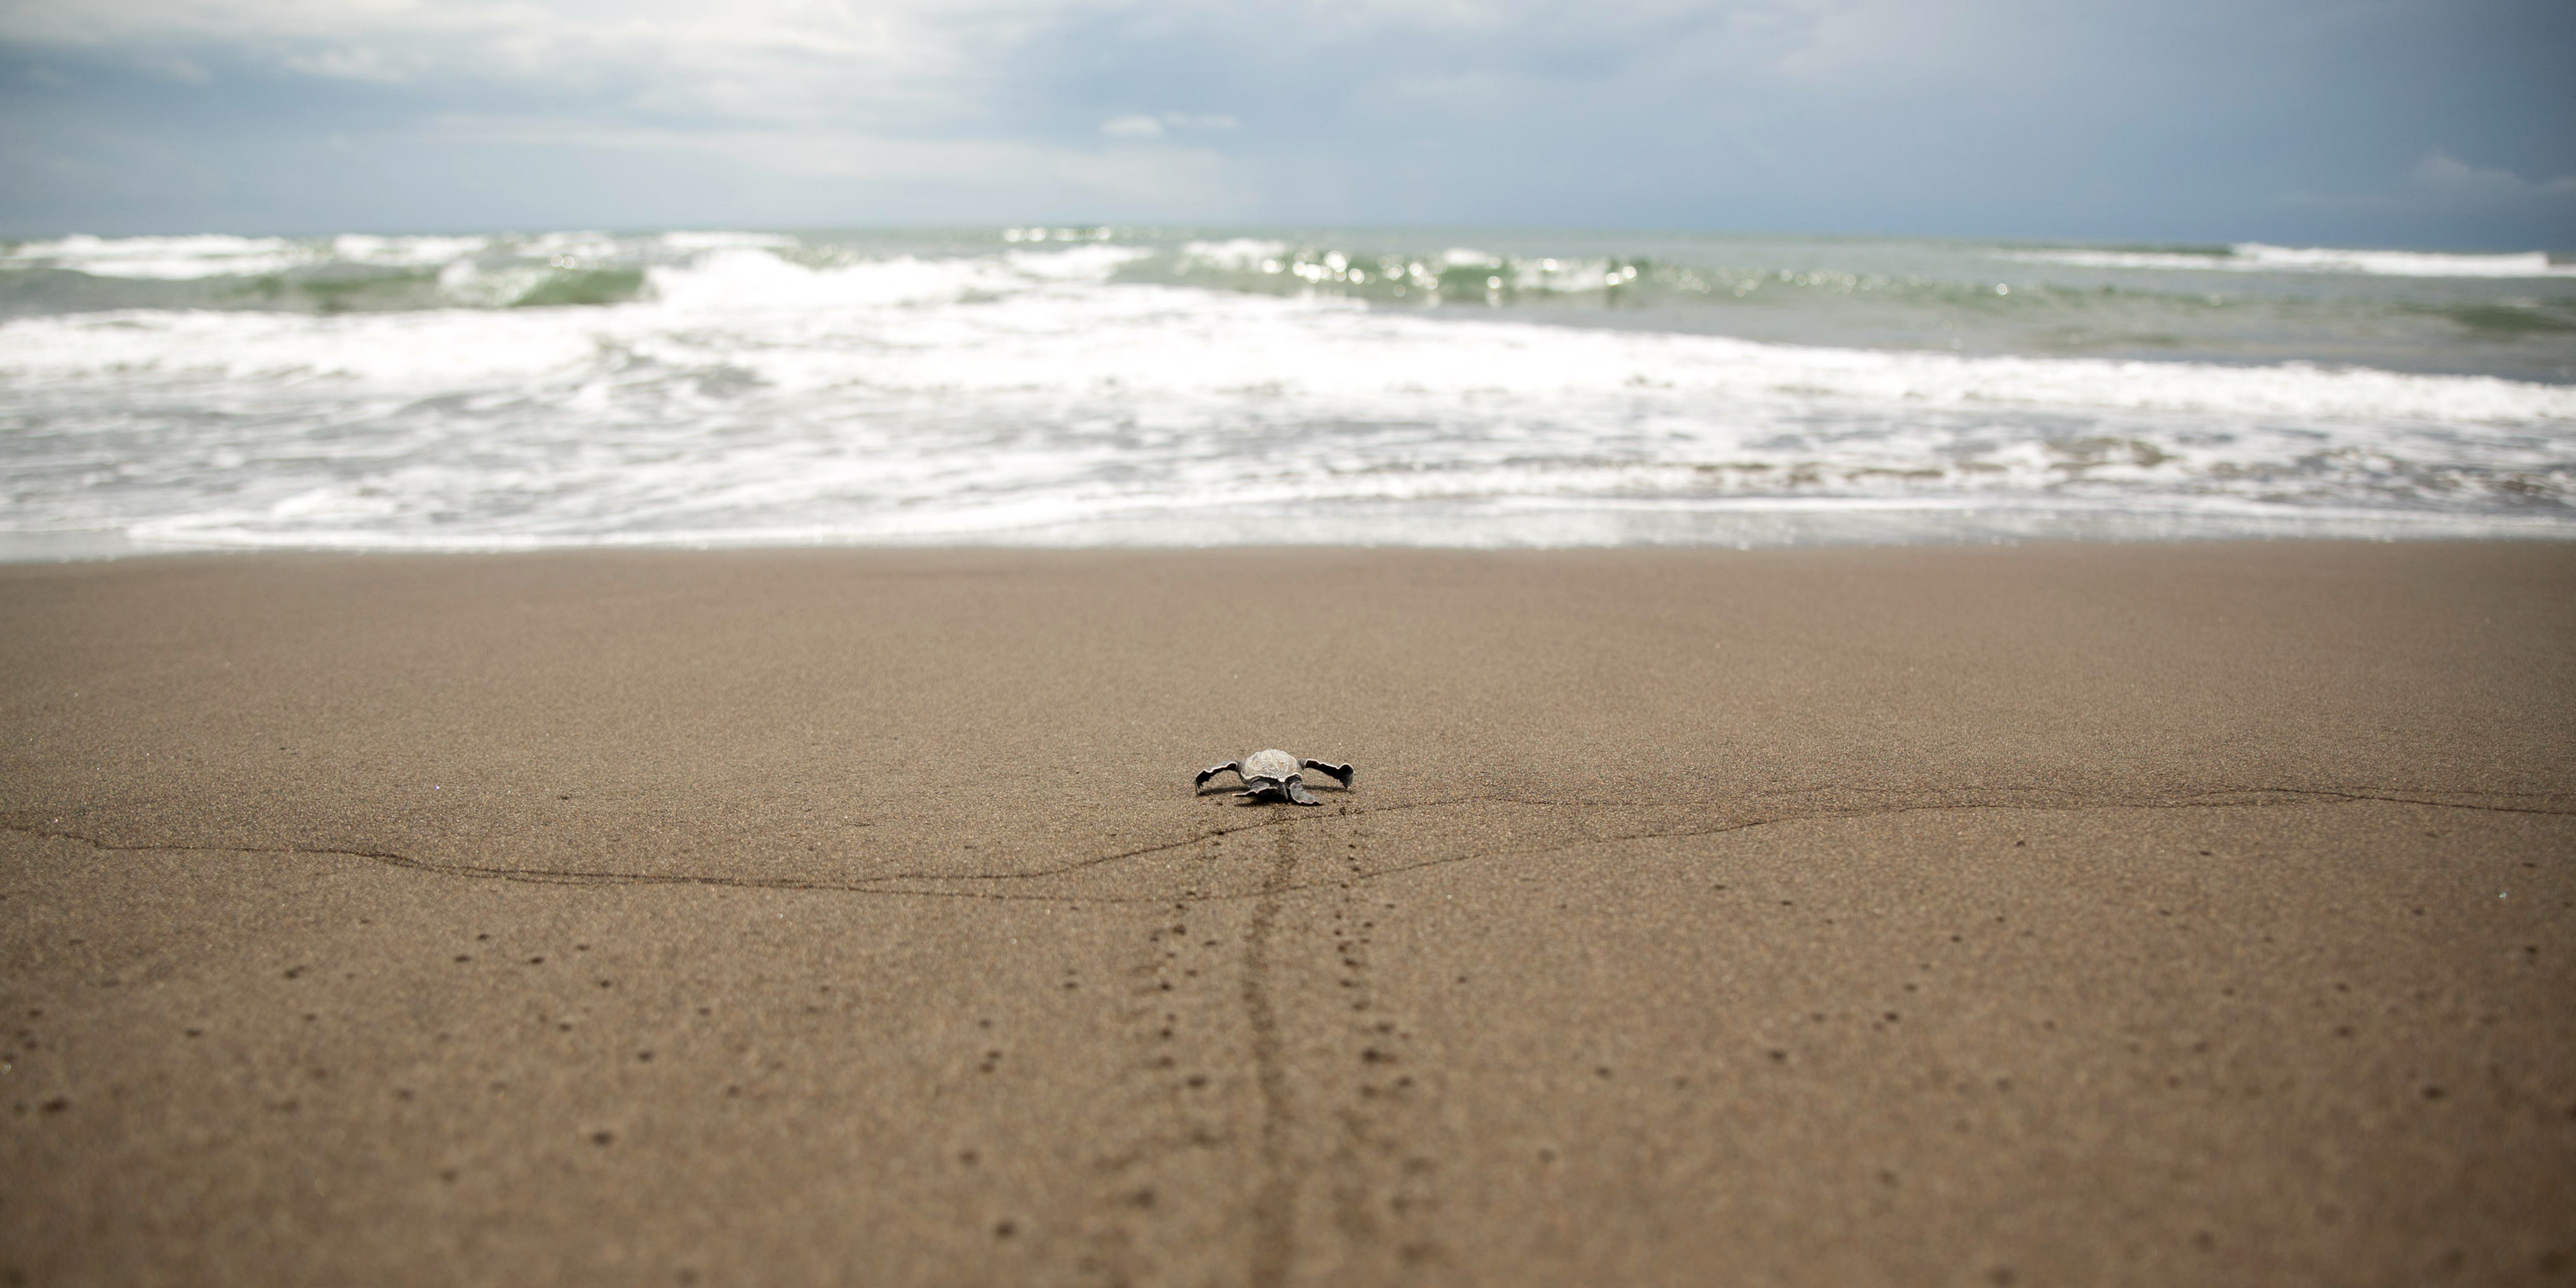 One of the endangered sea turtles in costa rica makes its way to the ocean.